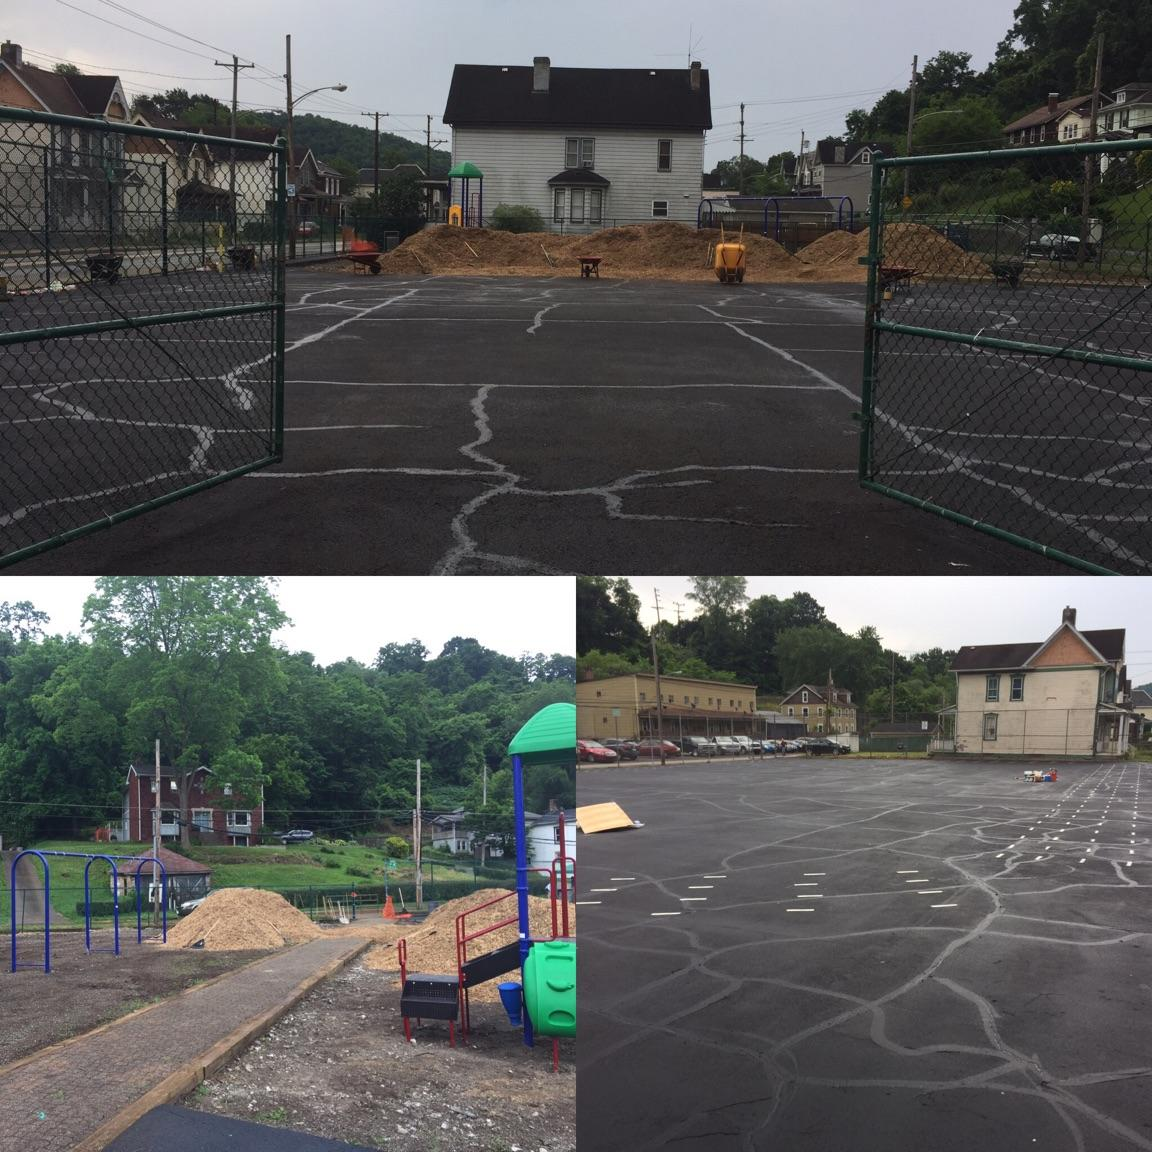 Before and after photos of Larimer Playground in Turtle Creek. Site of the 2017 Day of Action.